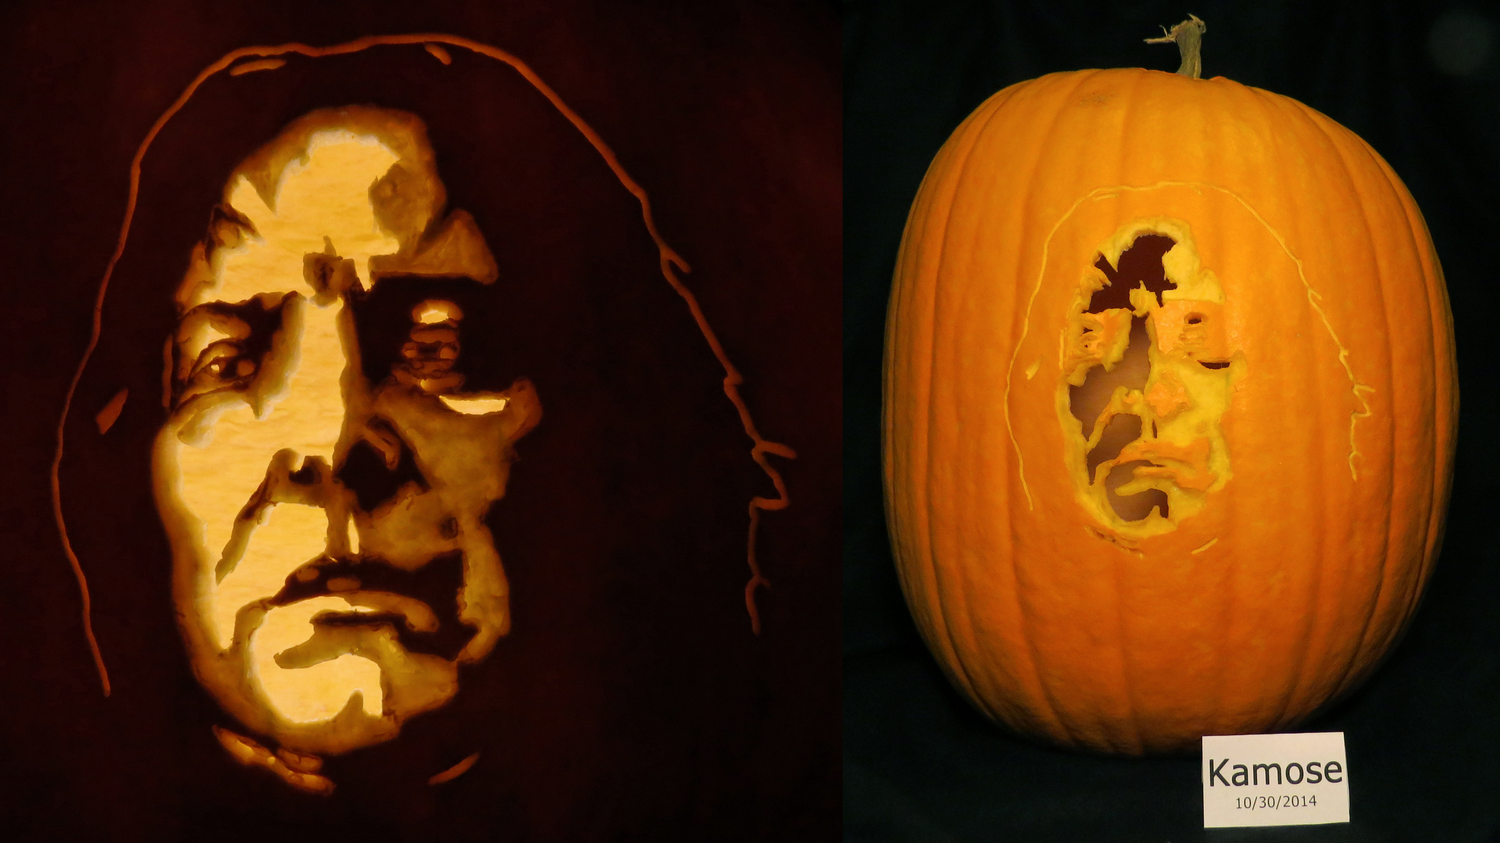 Severus snape pumpkin from harry potter by kamose on for Harry potter pumpkin carving templates